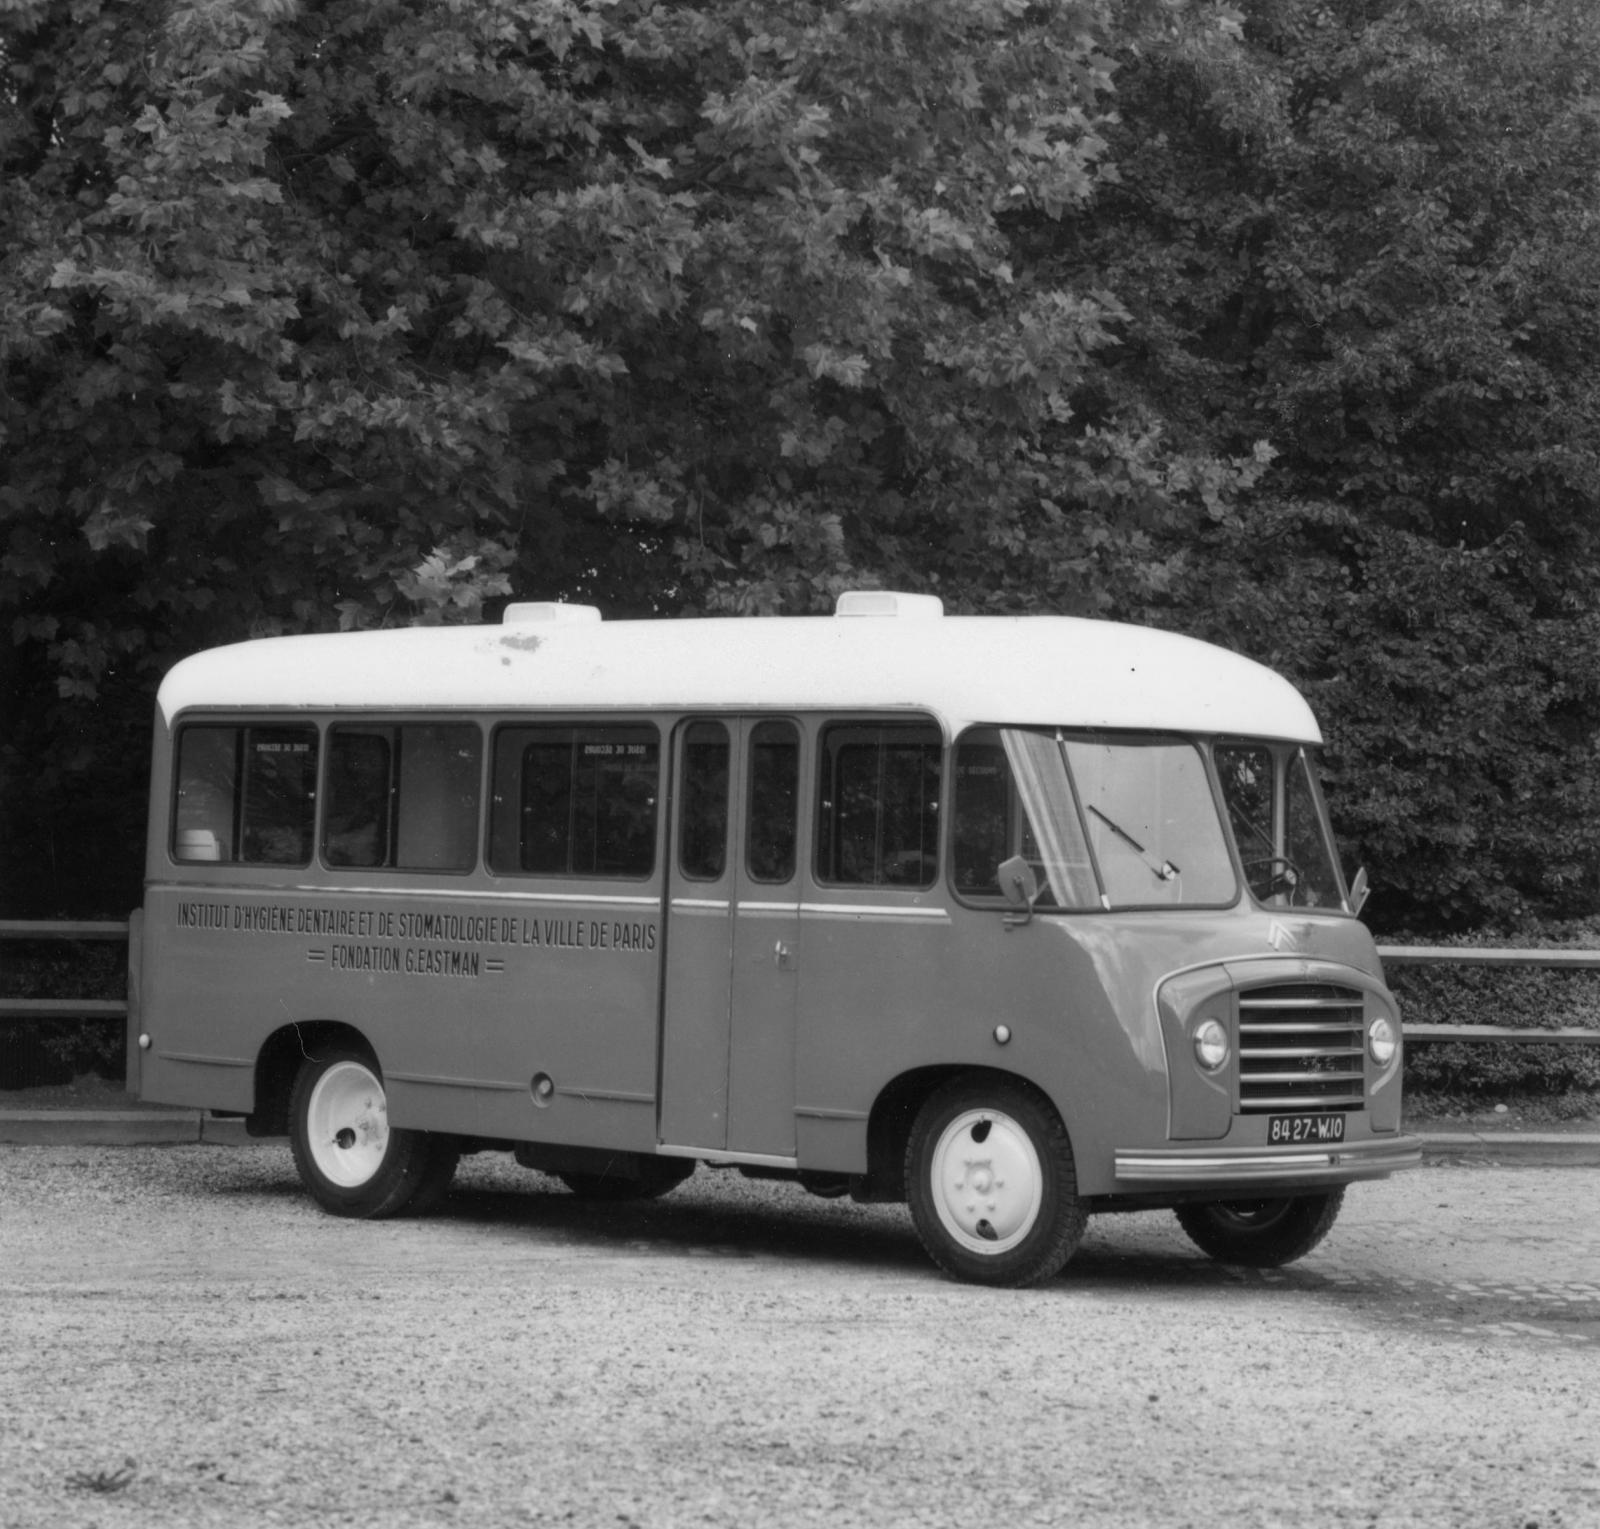 Citroën bus for the Institute of Hygiene and Stomatology in Paris